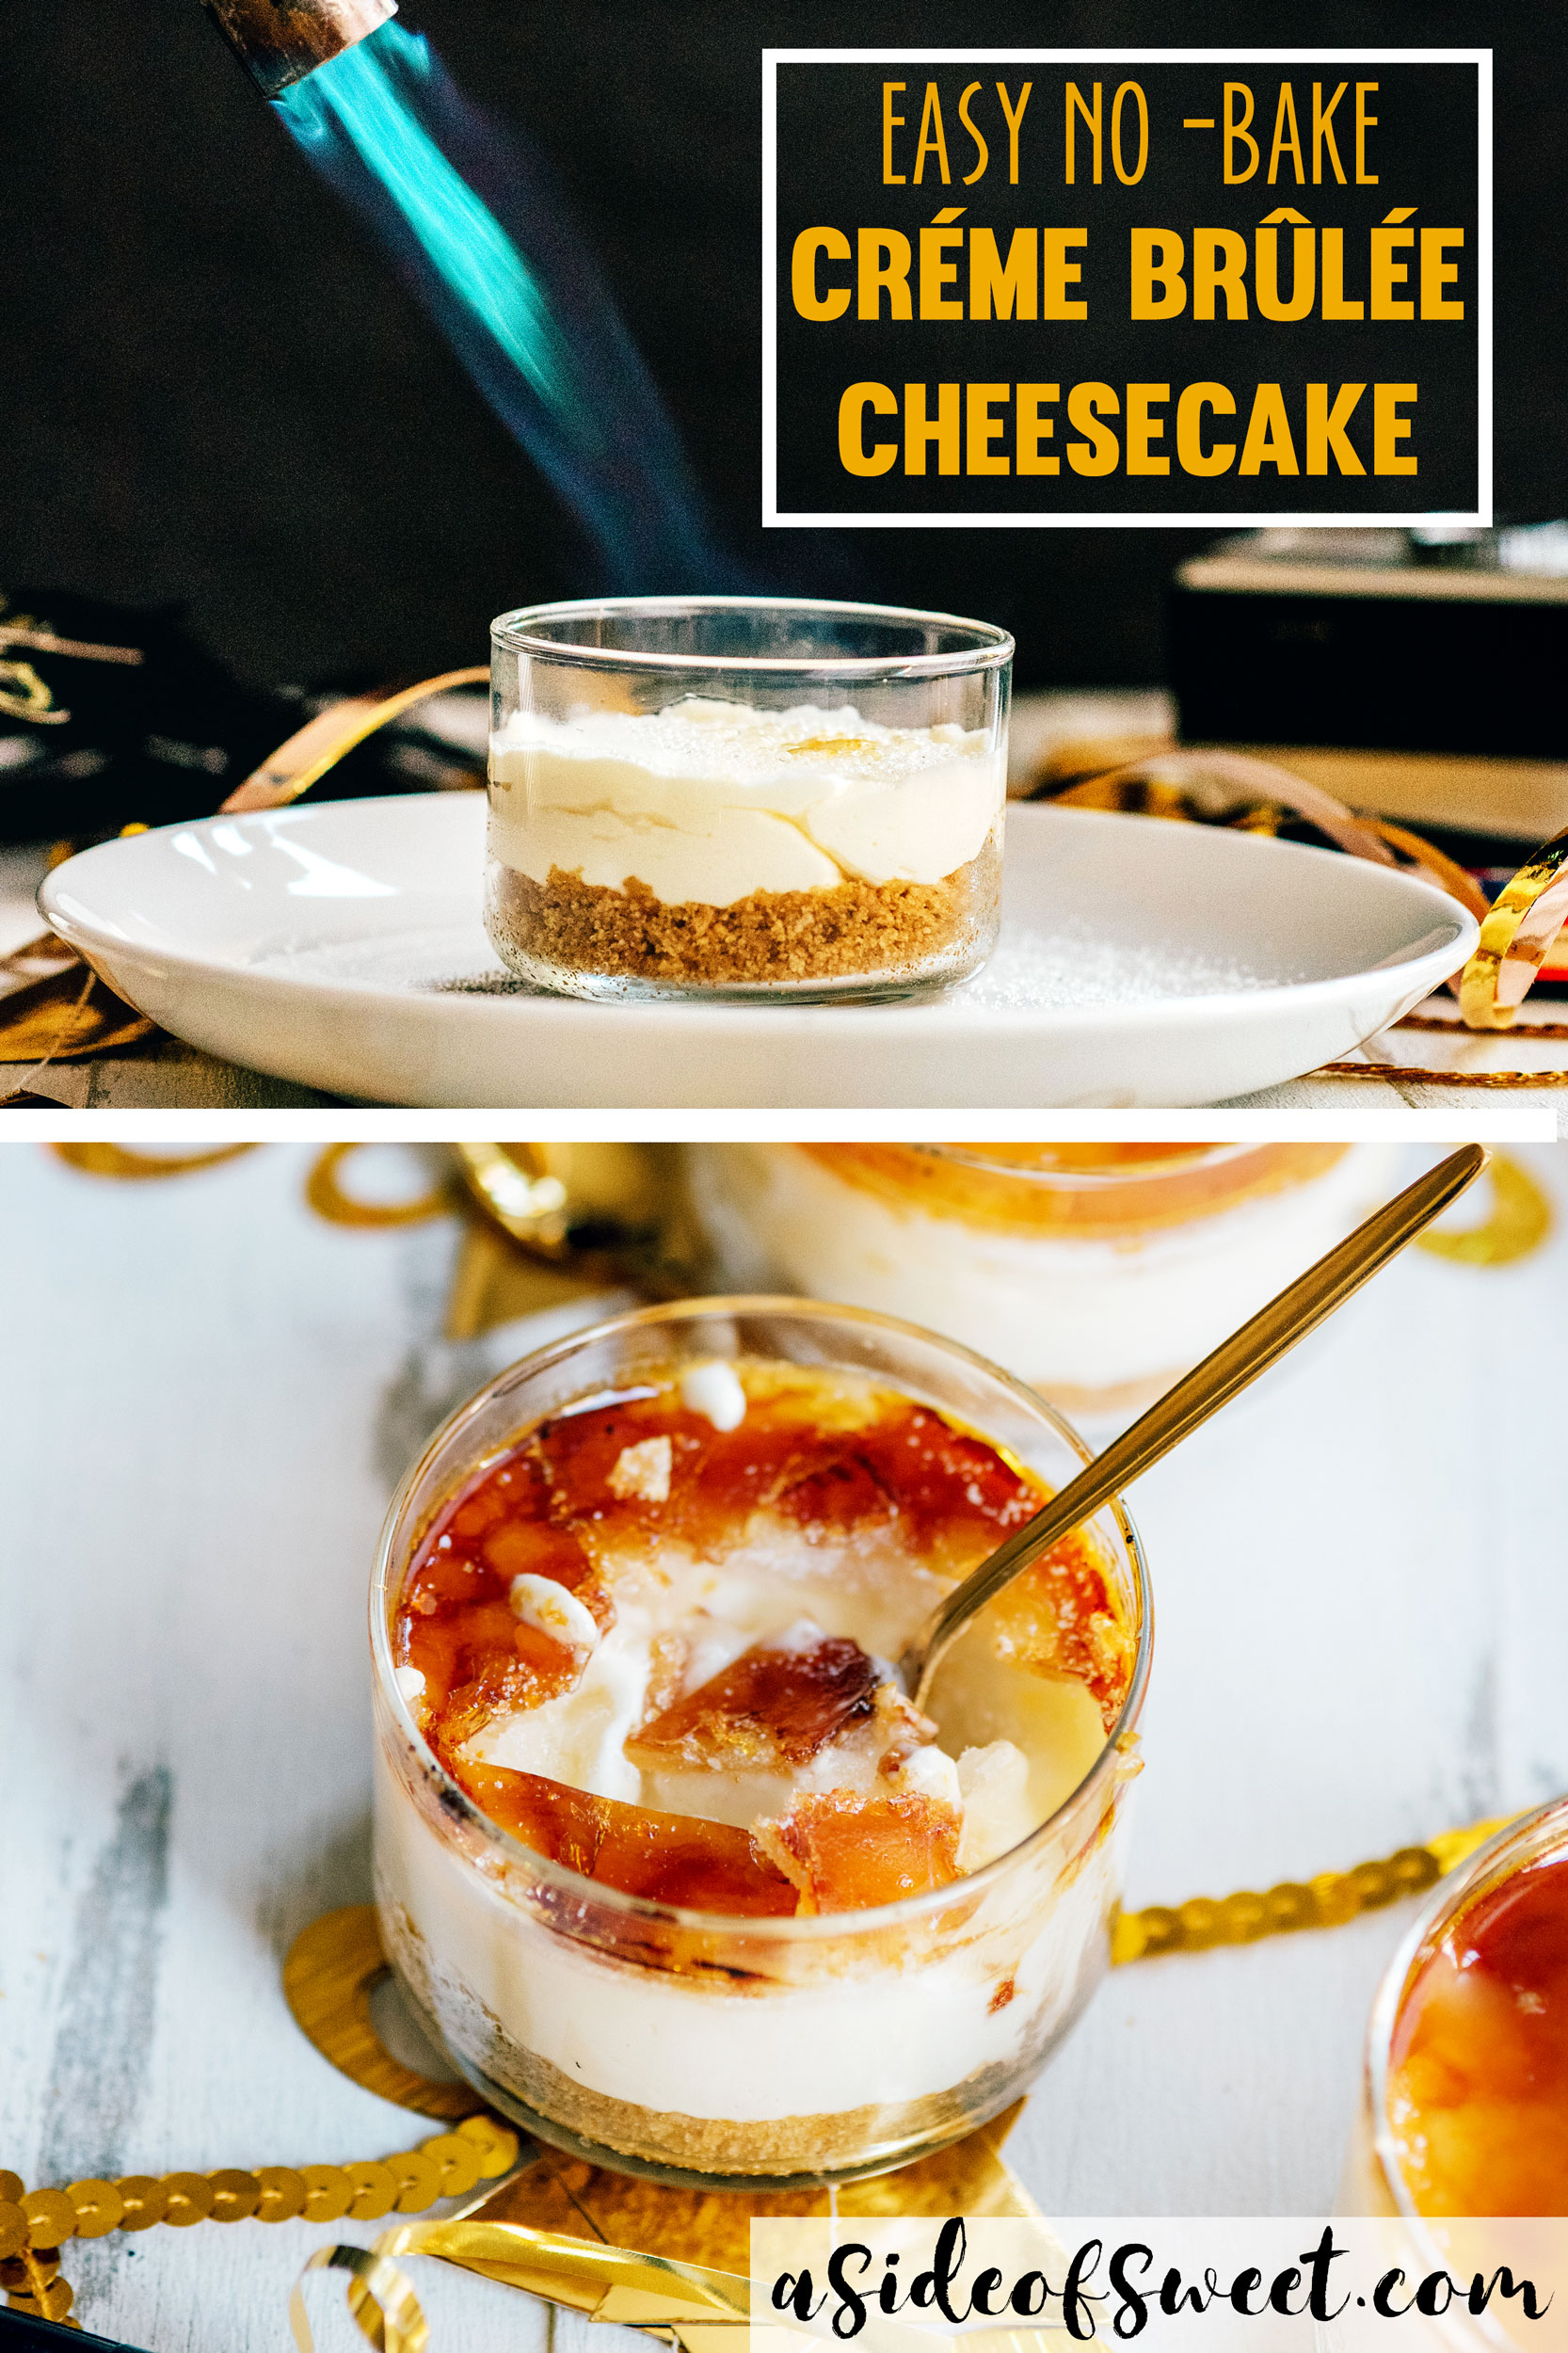 No Bake Creme Brulee Cheesecake - Easy New Year's Recipe